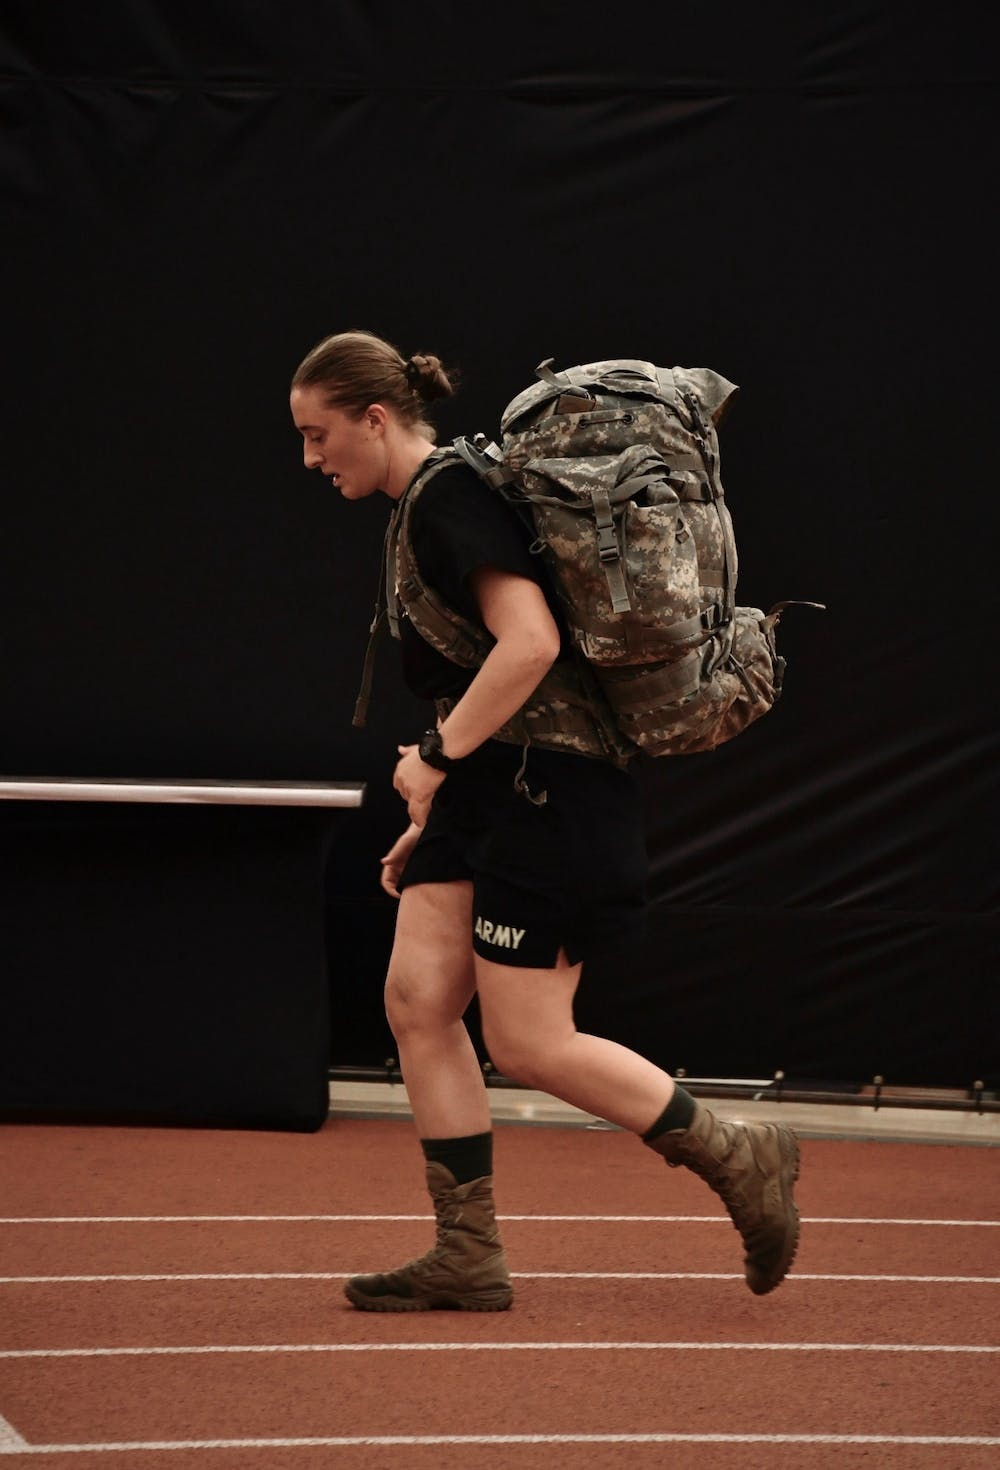 <p>Cadet Eliza Ewing '20.</p> <h6>Photo Credit: Jon Ort / The Daily Princetonian</h6>